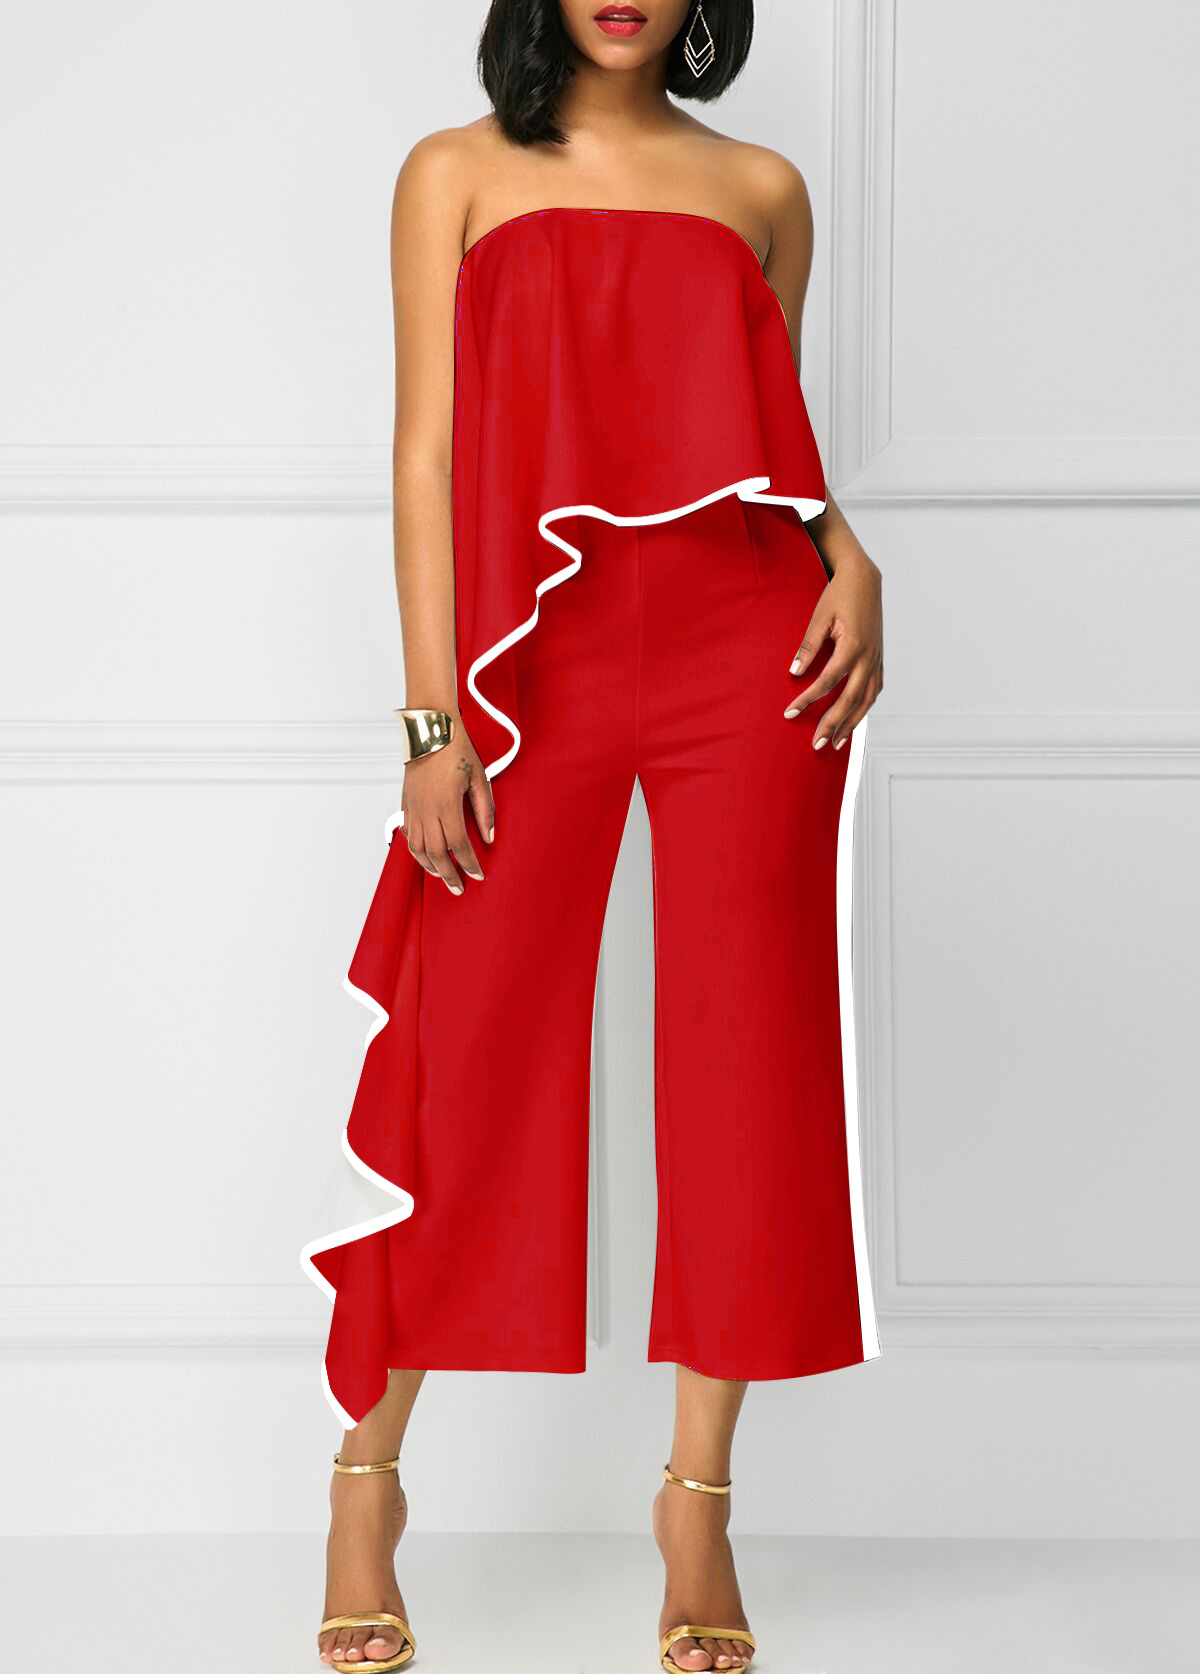 Catsuit Real Limited Sexy Bodysuit 2018 New Arrival Plus Size Jumpsuits And Rompers For Women Elegant Jumpsuit Sexy Pants